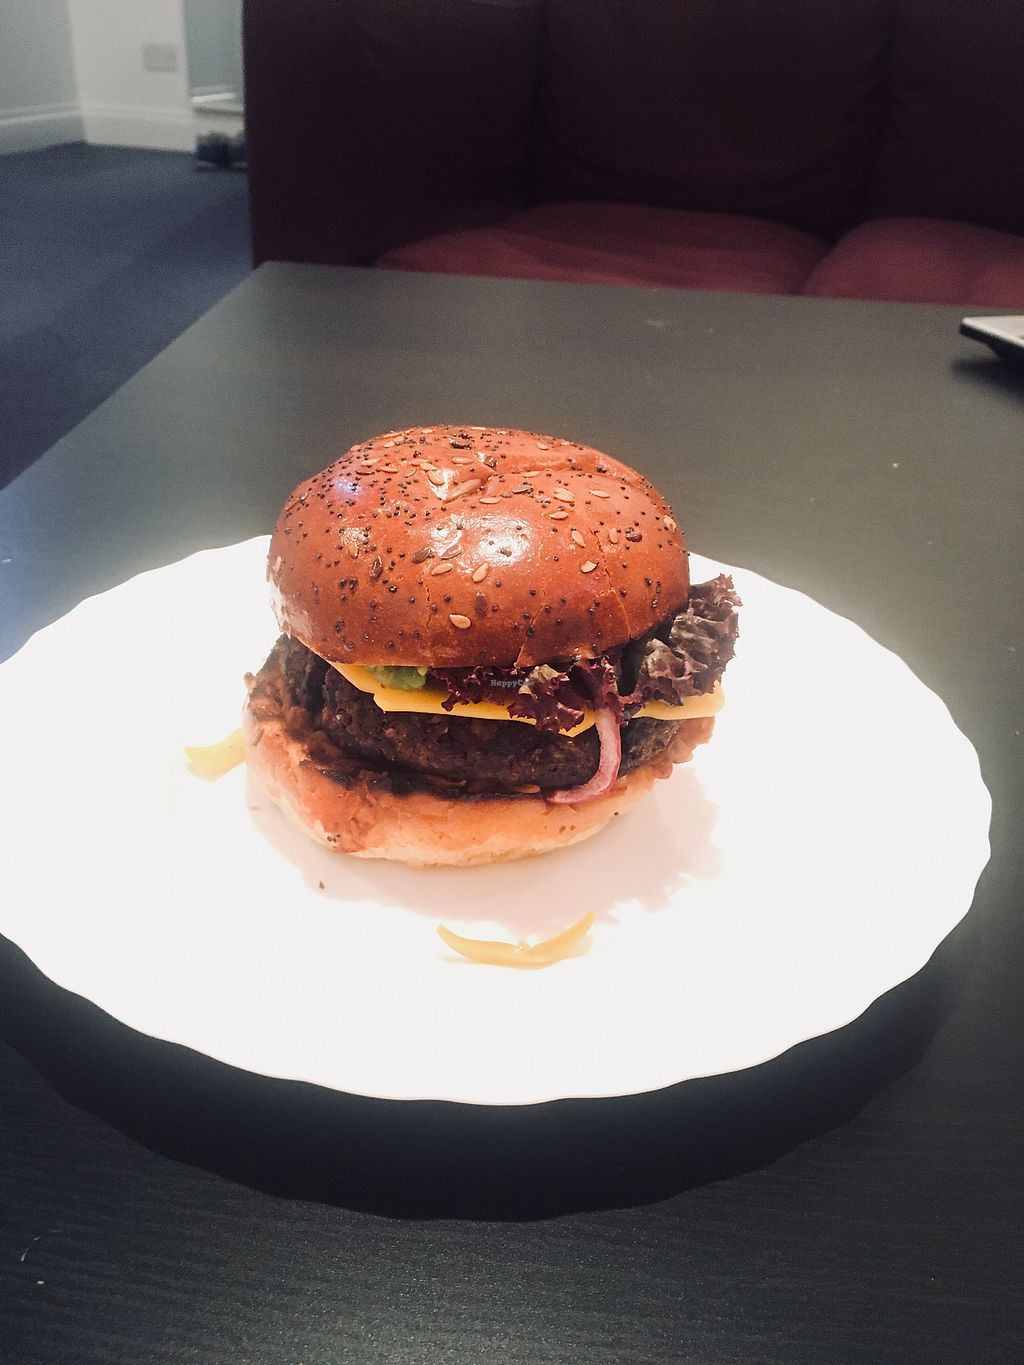 """Photo of The Vegan Alternative: Burger & Bao  by <a href=""""/members/profile/kb3"""">kb3</a> <br/>Burger! <br/> February 28, 2018  - <a href='/contact/abuse/image/109633/364898'>Report</a>"""